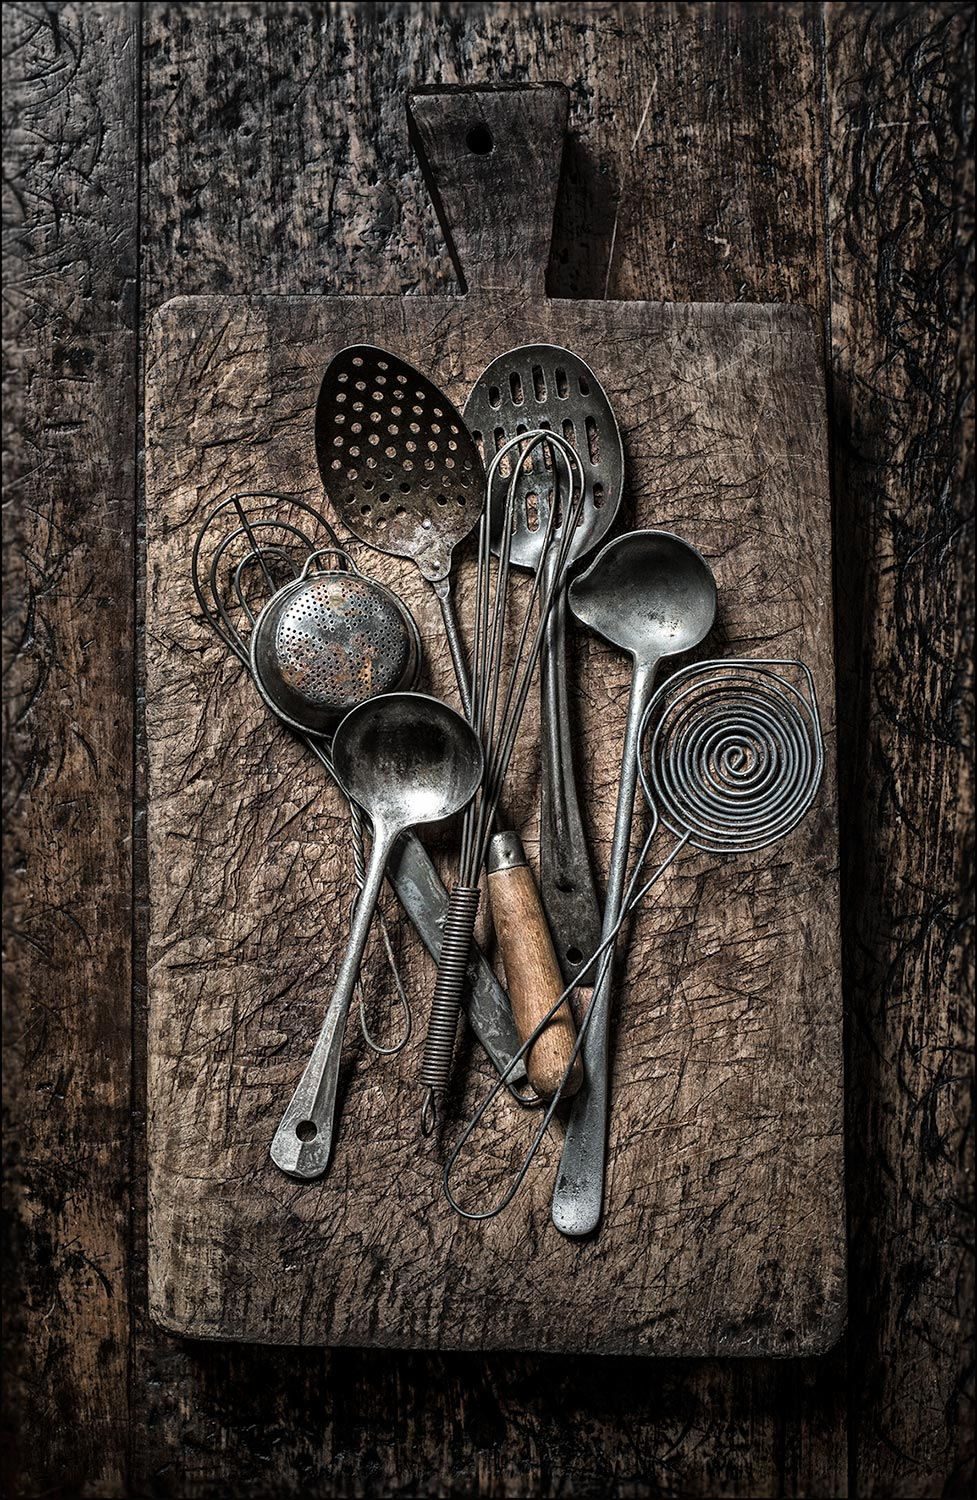 Cooking-Utensils-Edit.jpg